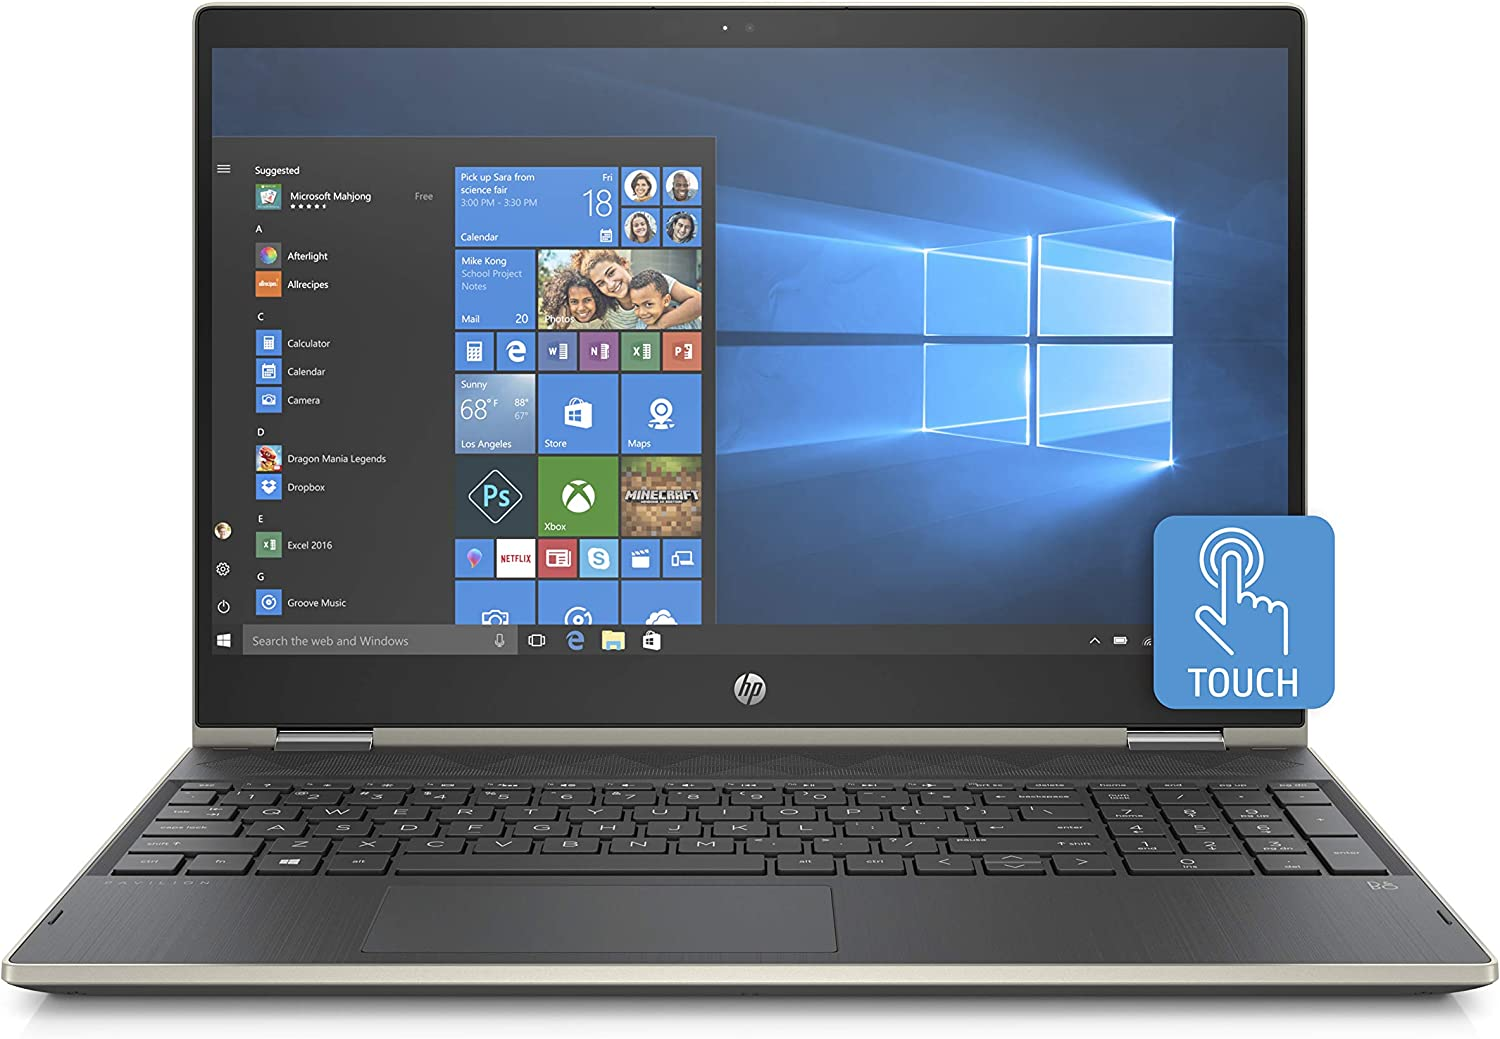 HP x360 High Performance Business 15.6in FHD IPS Touchscreen Laptop, Intel Core i5-8250U, 4GB RAM, 1TB Hard Drive, Intel UHD 620, WiFi, Bluetooth, Windows 10 Pale-Gold (Renewed)